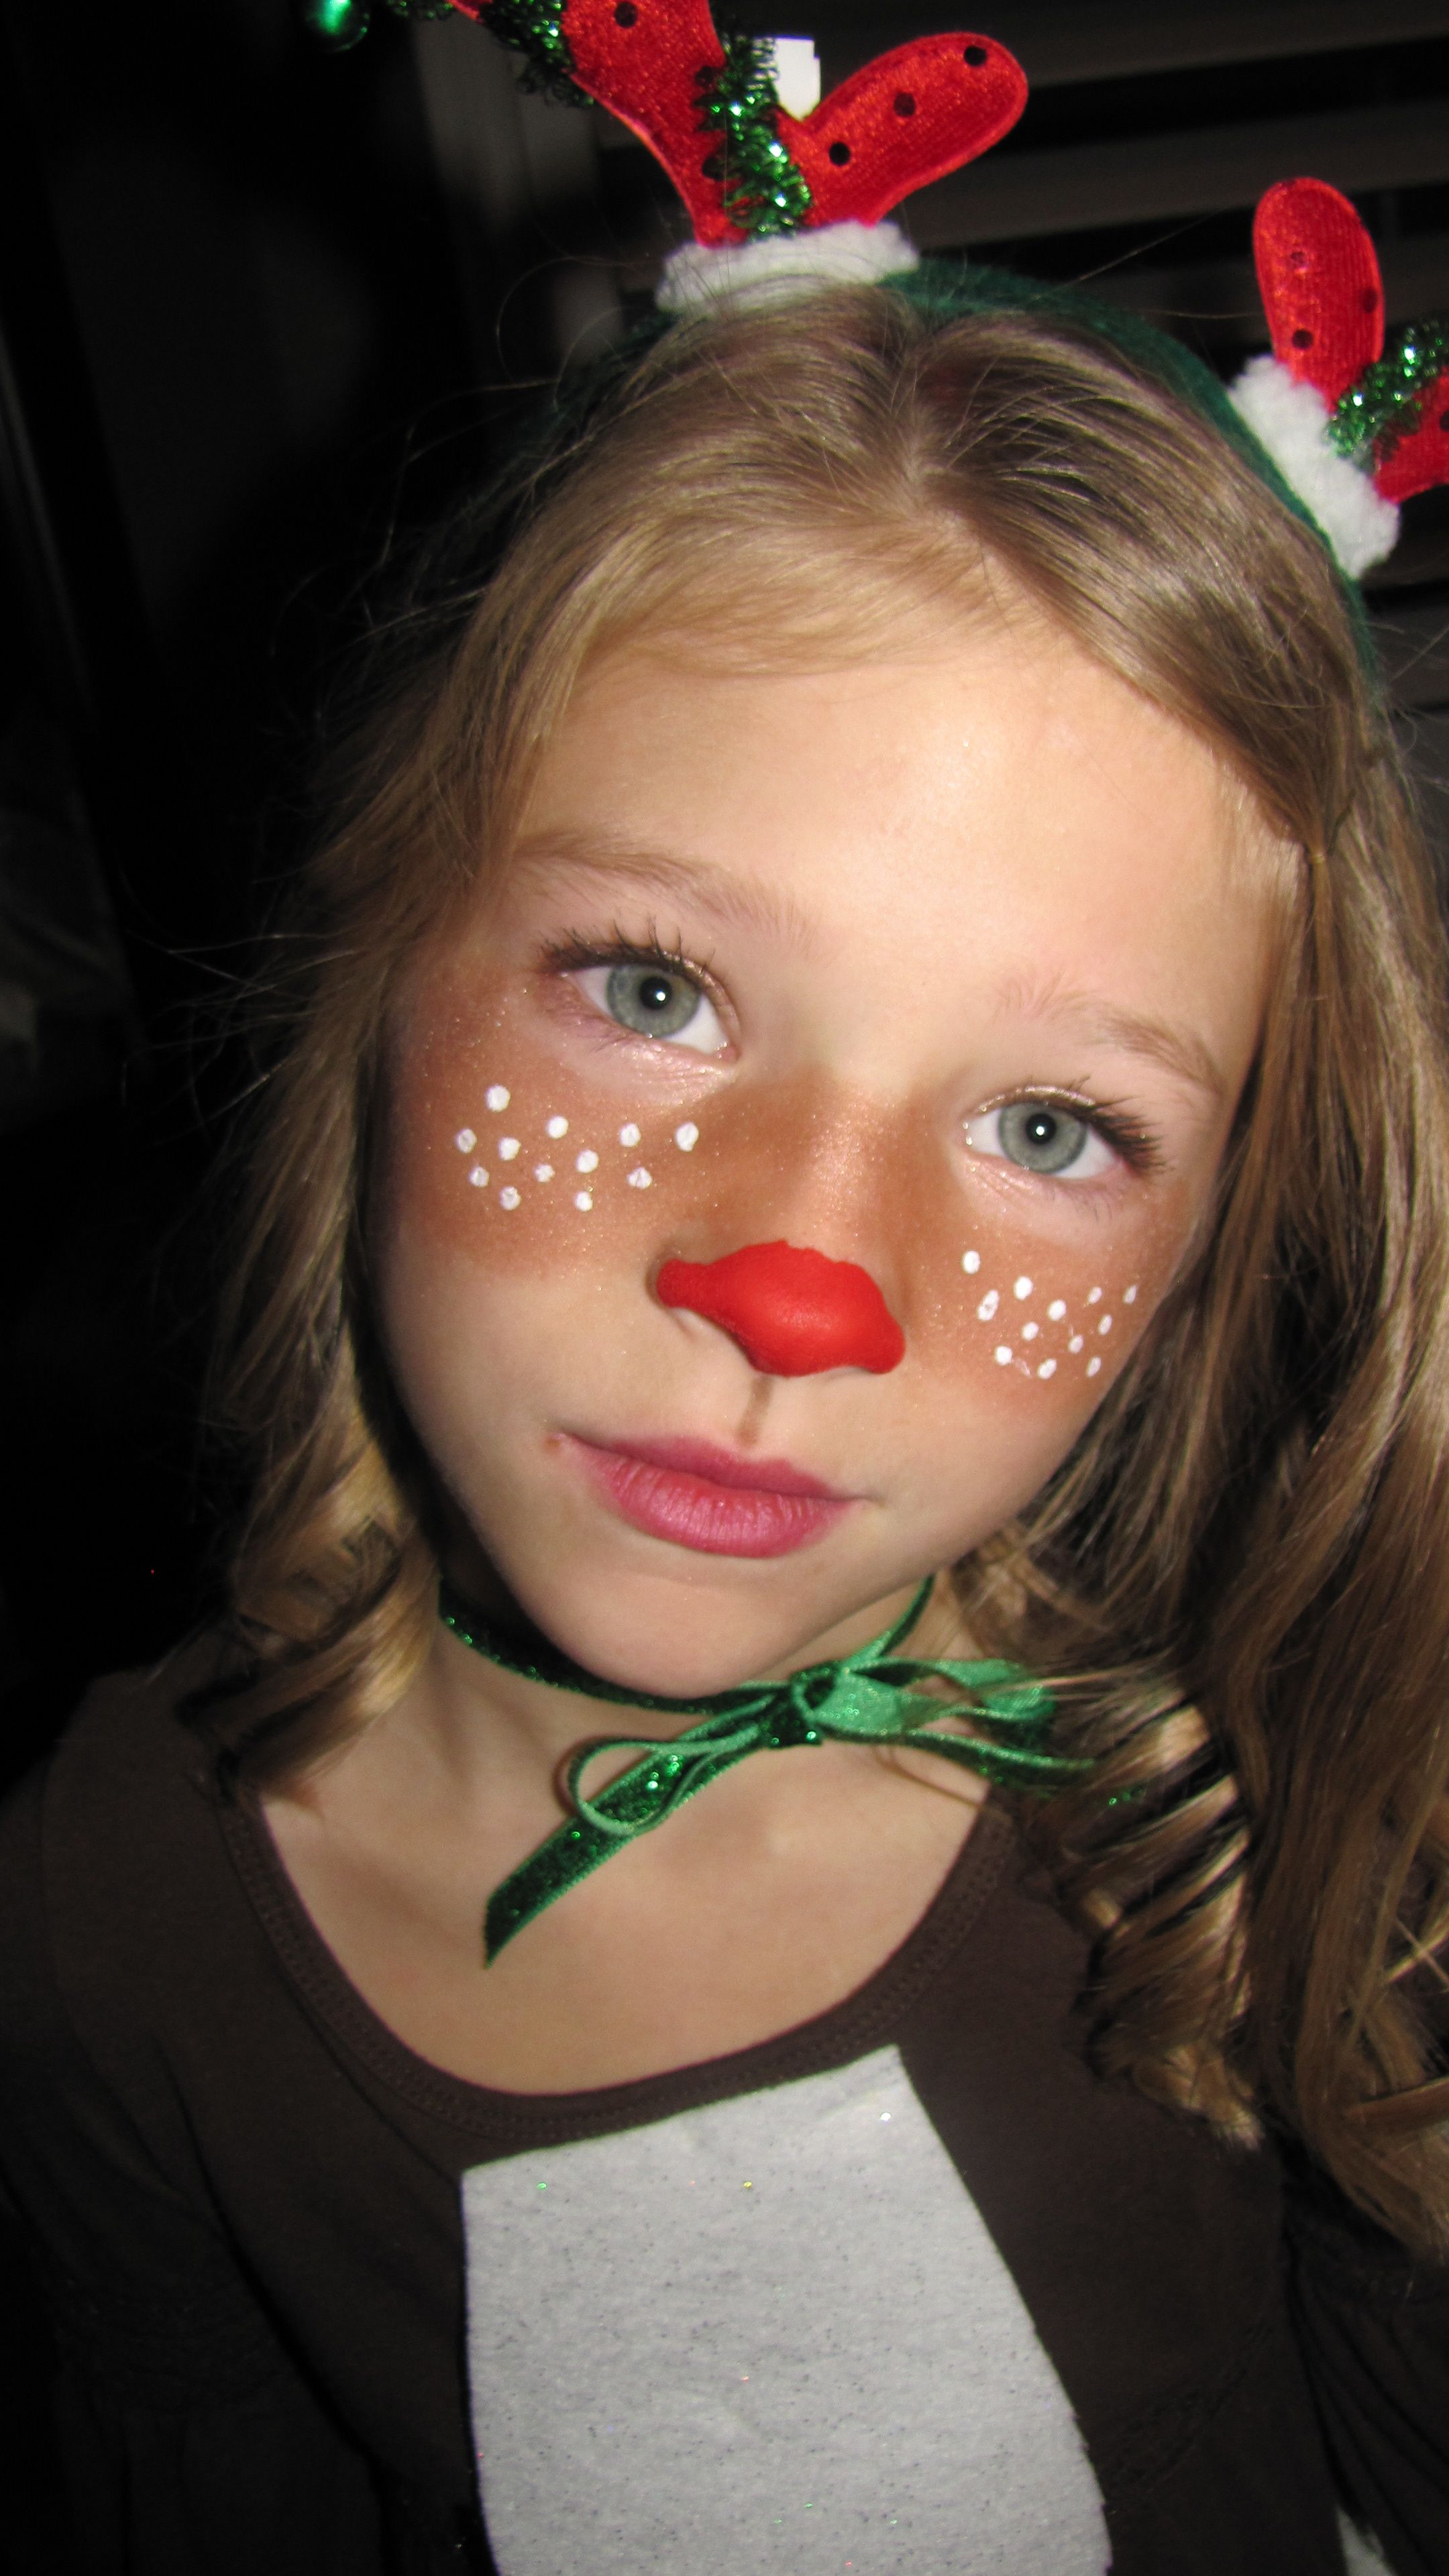 Uncategorized Rudolph Face Painting quick rudolph face bronzer for brown cheeks and acrylic paint nose white dots